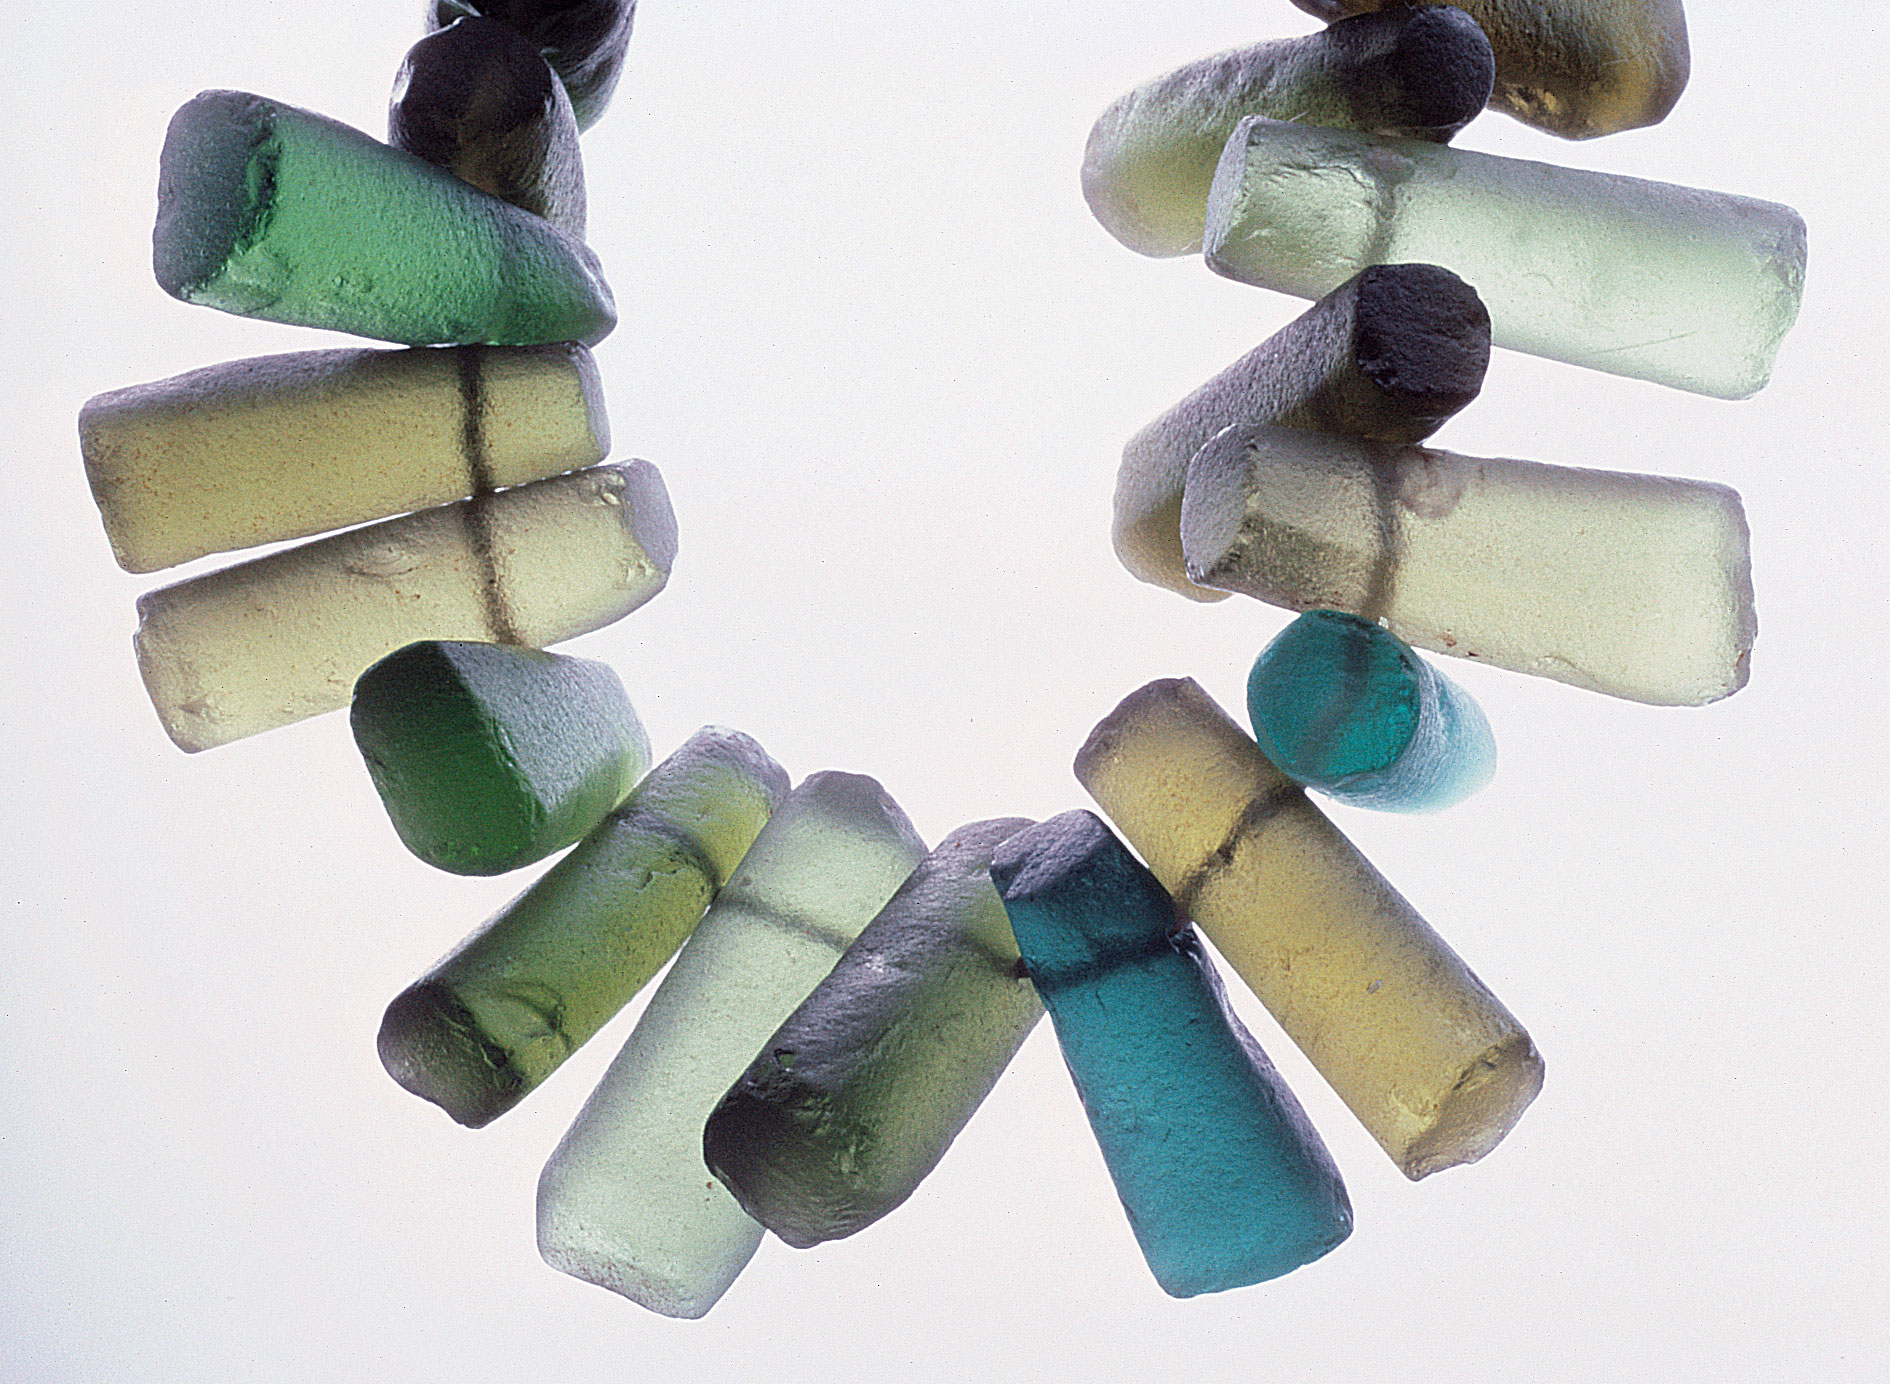 Cold-worked pendants made by re-grounding and perforating pieces of broken bottles. RKL